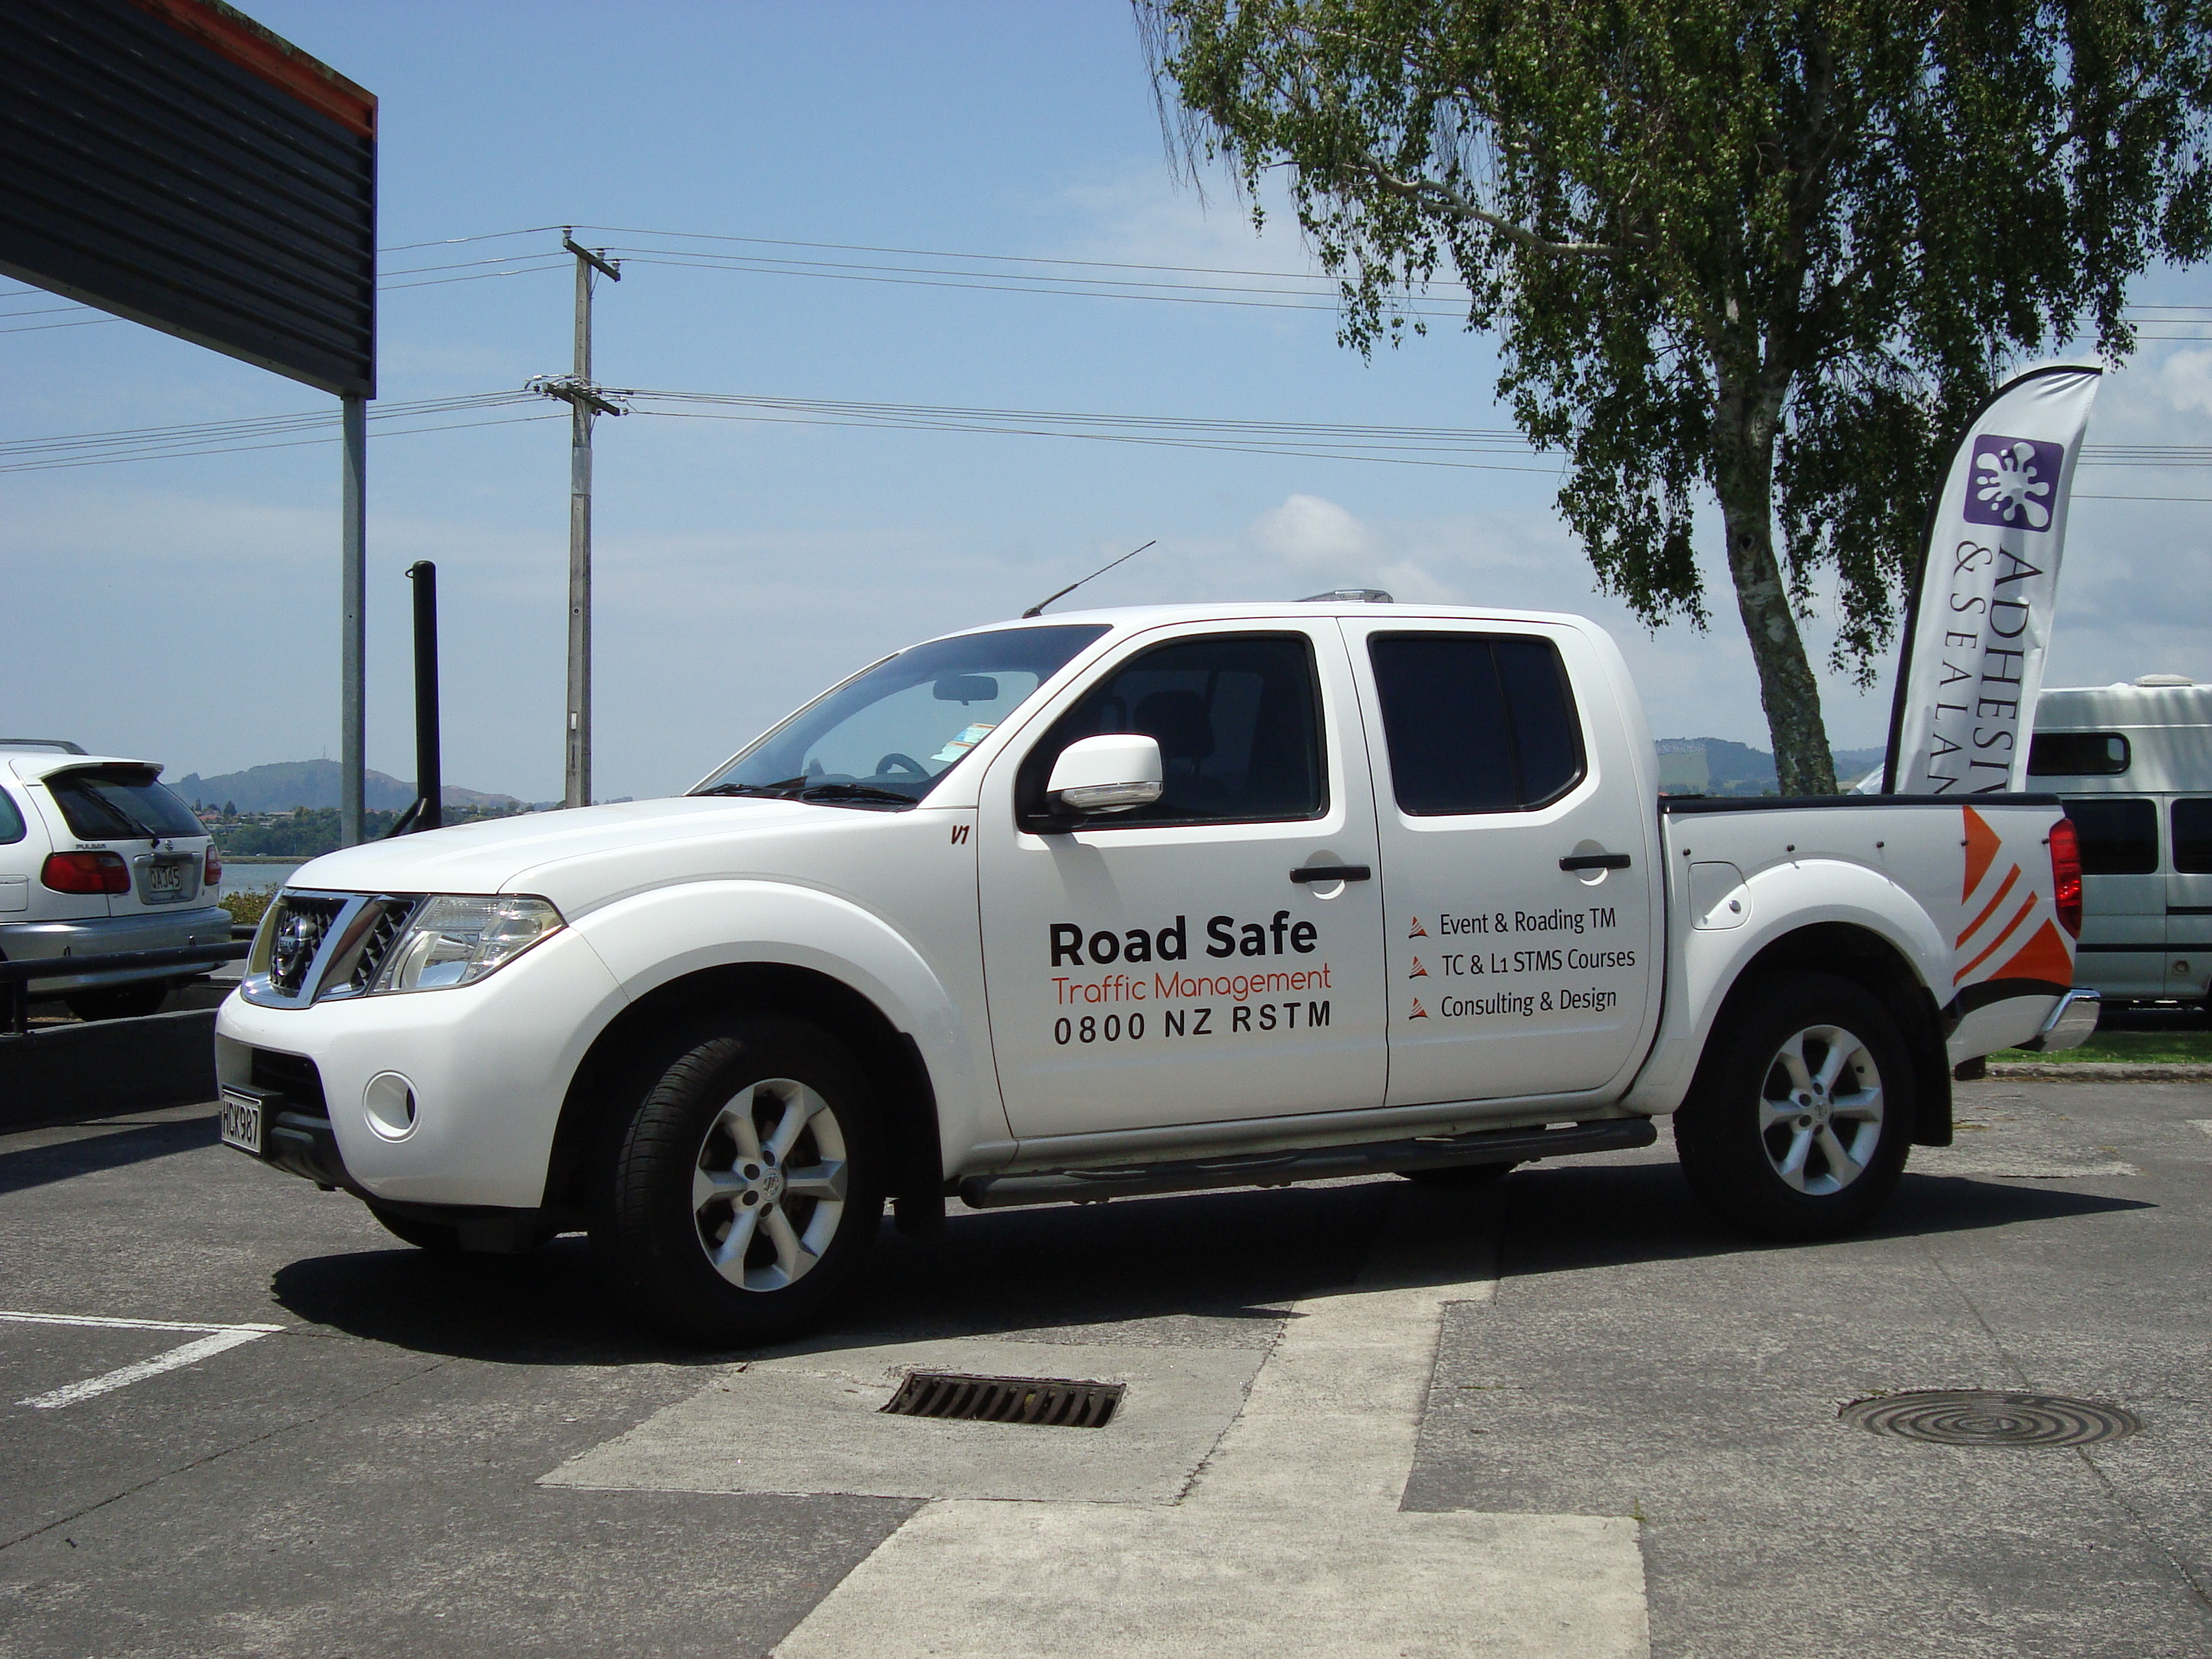 Road Safe Navara